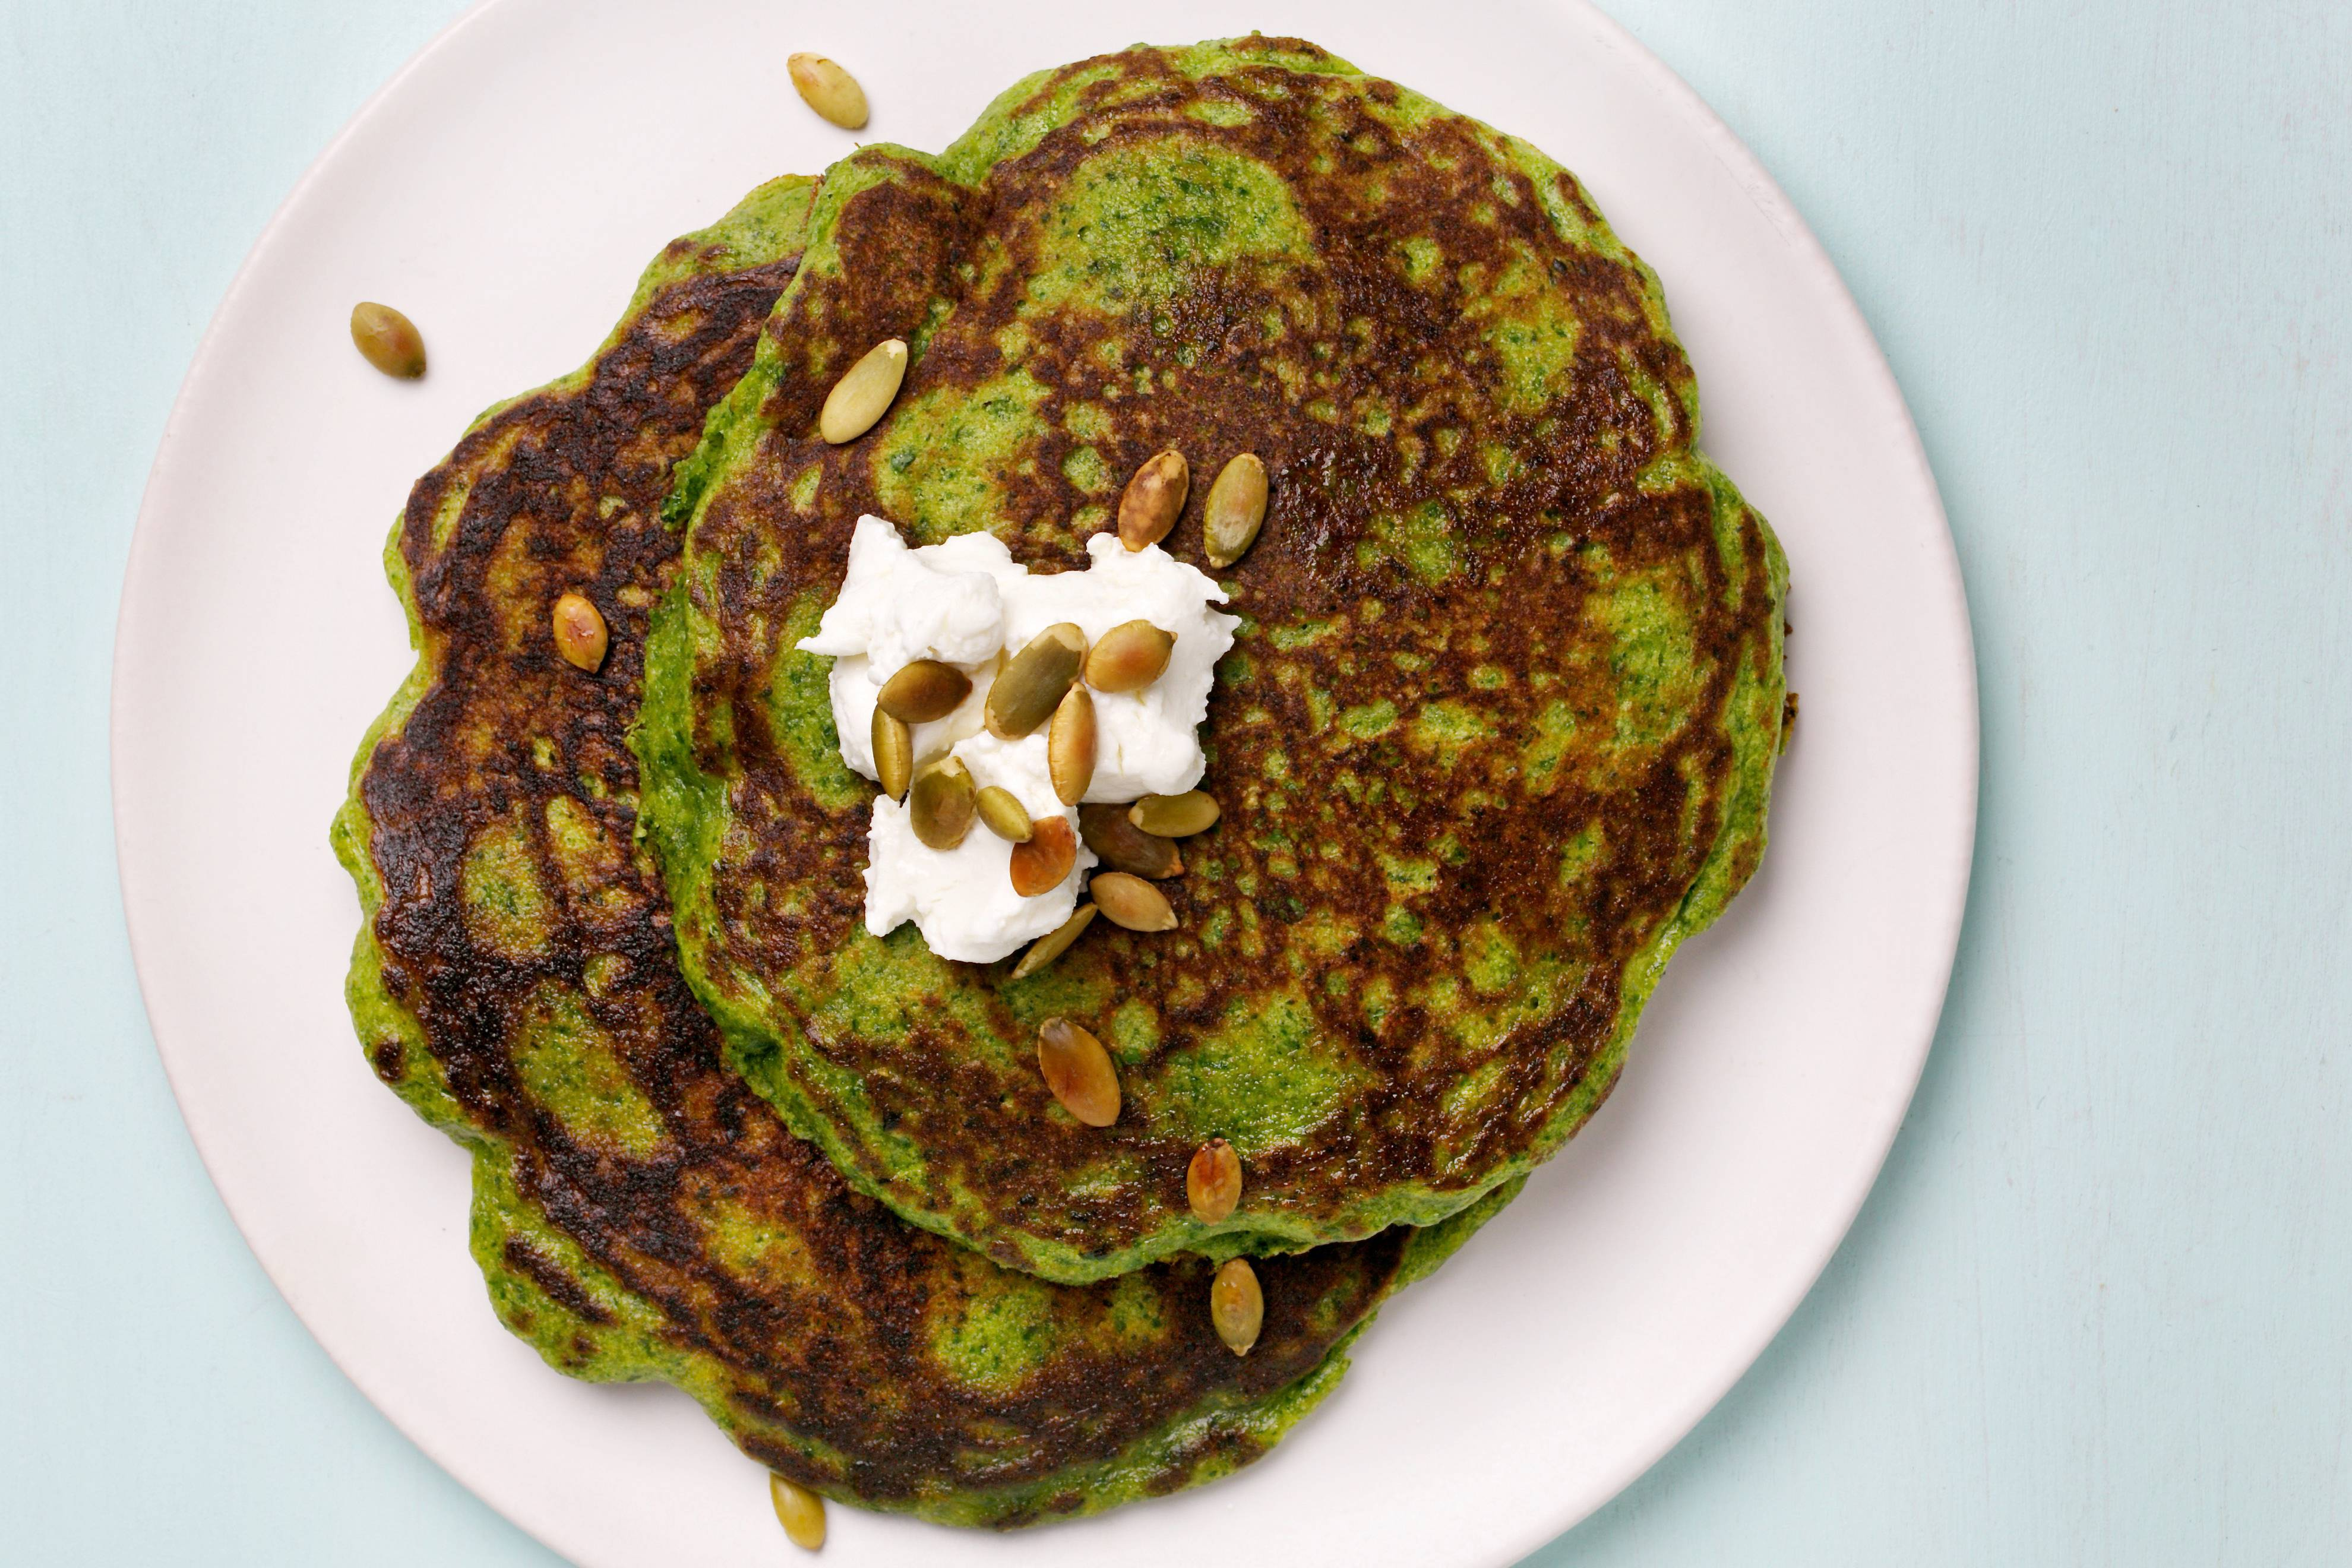 Green Pancakes can be adapted to lean sweet or savory.